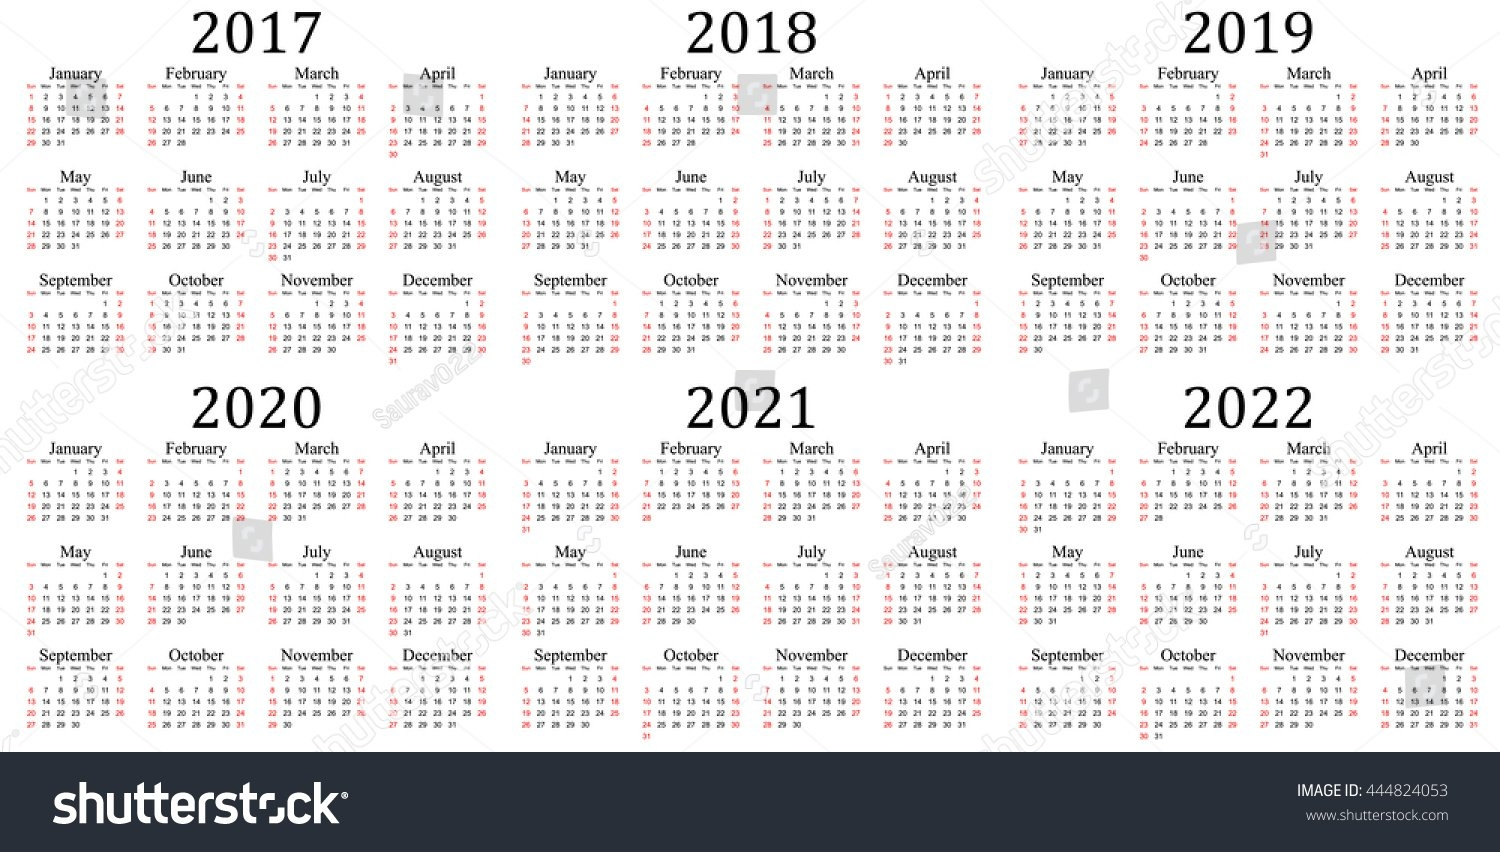 Six Year Calendar 2017 2018 2019 Stock Vector (Royalty Free 5 Year Calendar 2019 To 2023